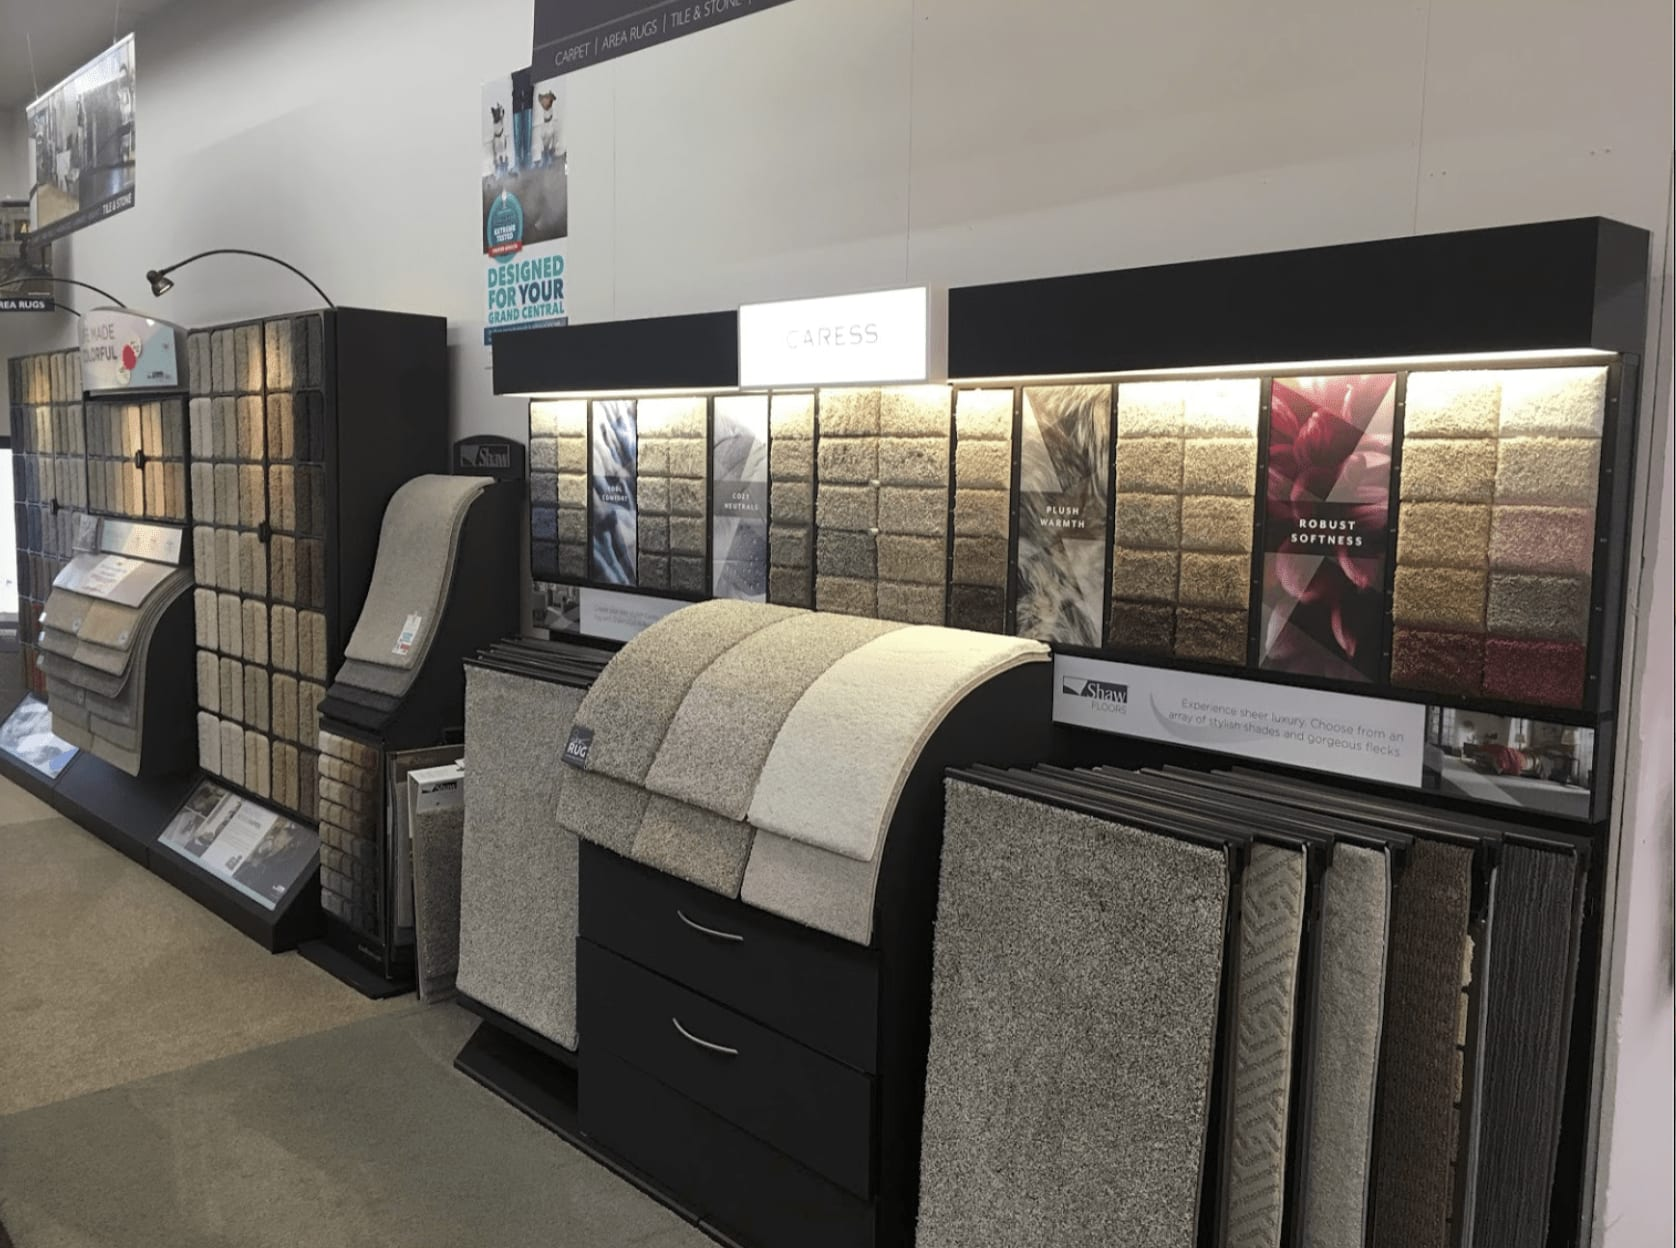 Carpet flooring in Woodbury, MN from the Seestedt's showroom